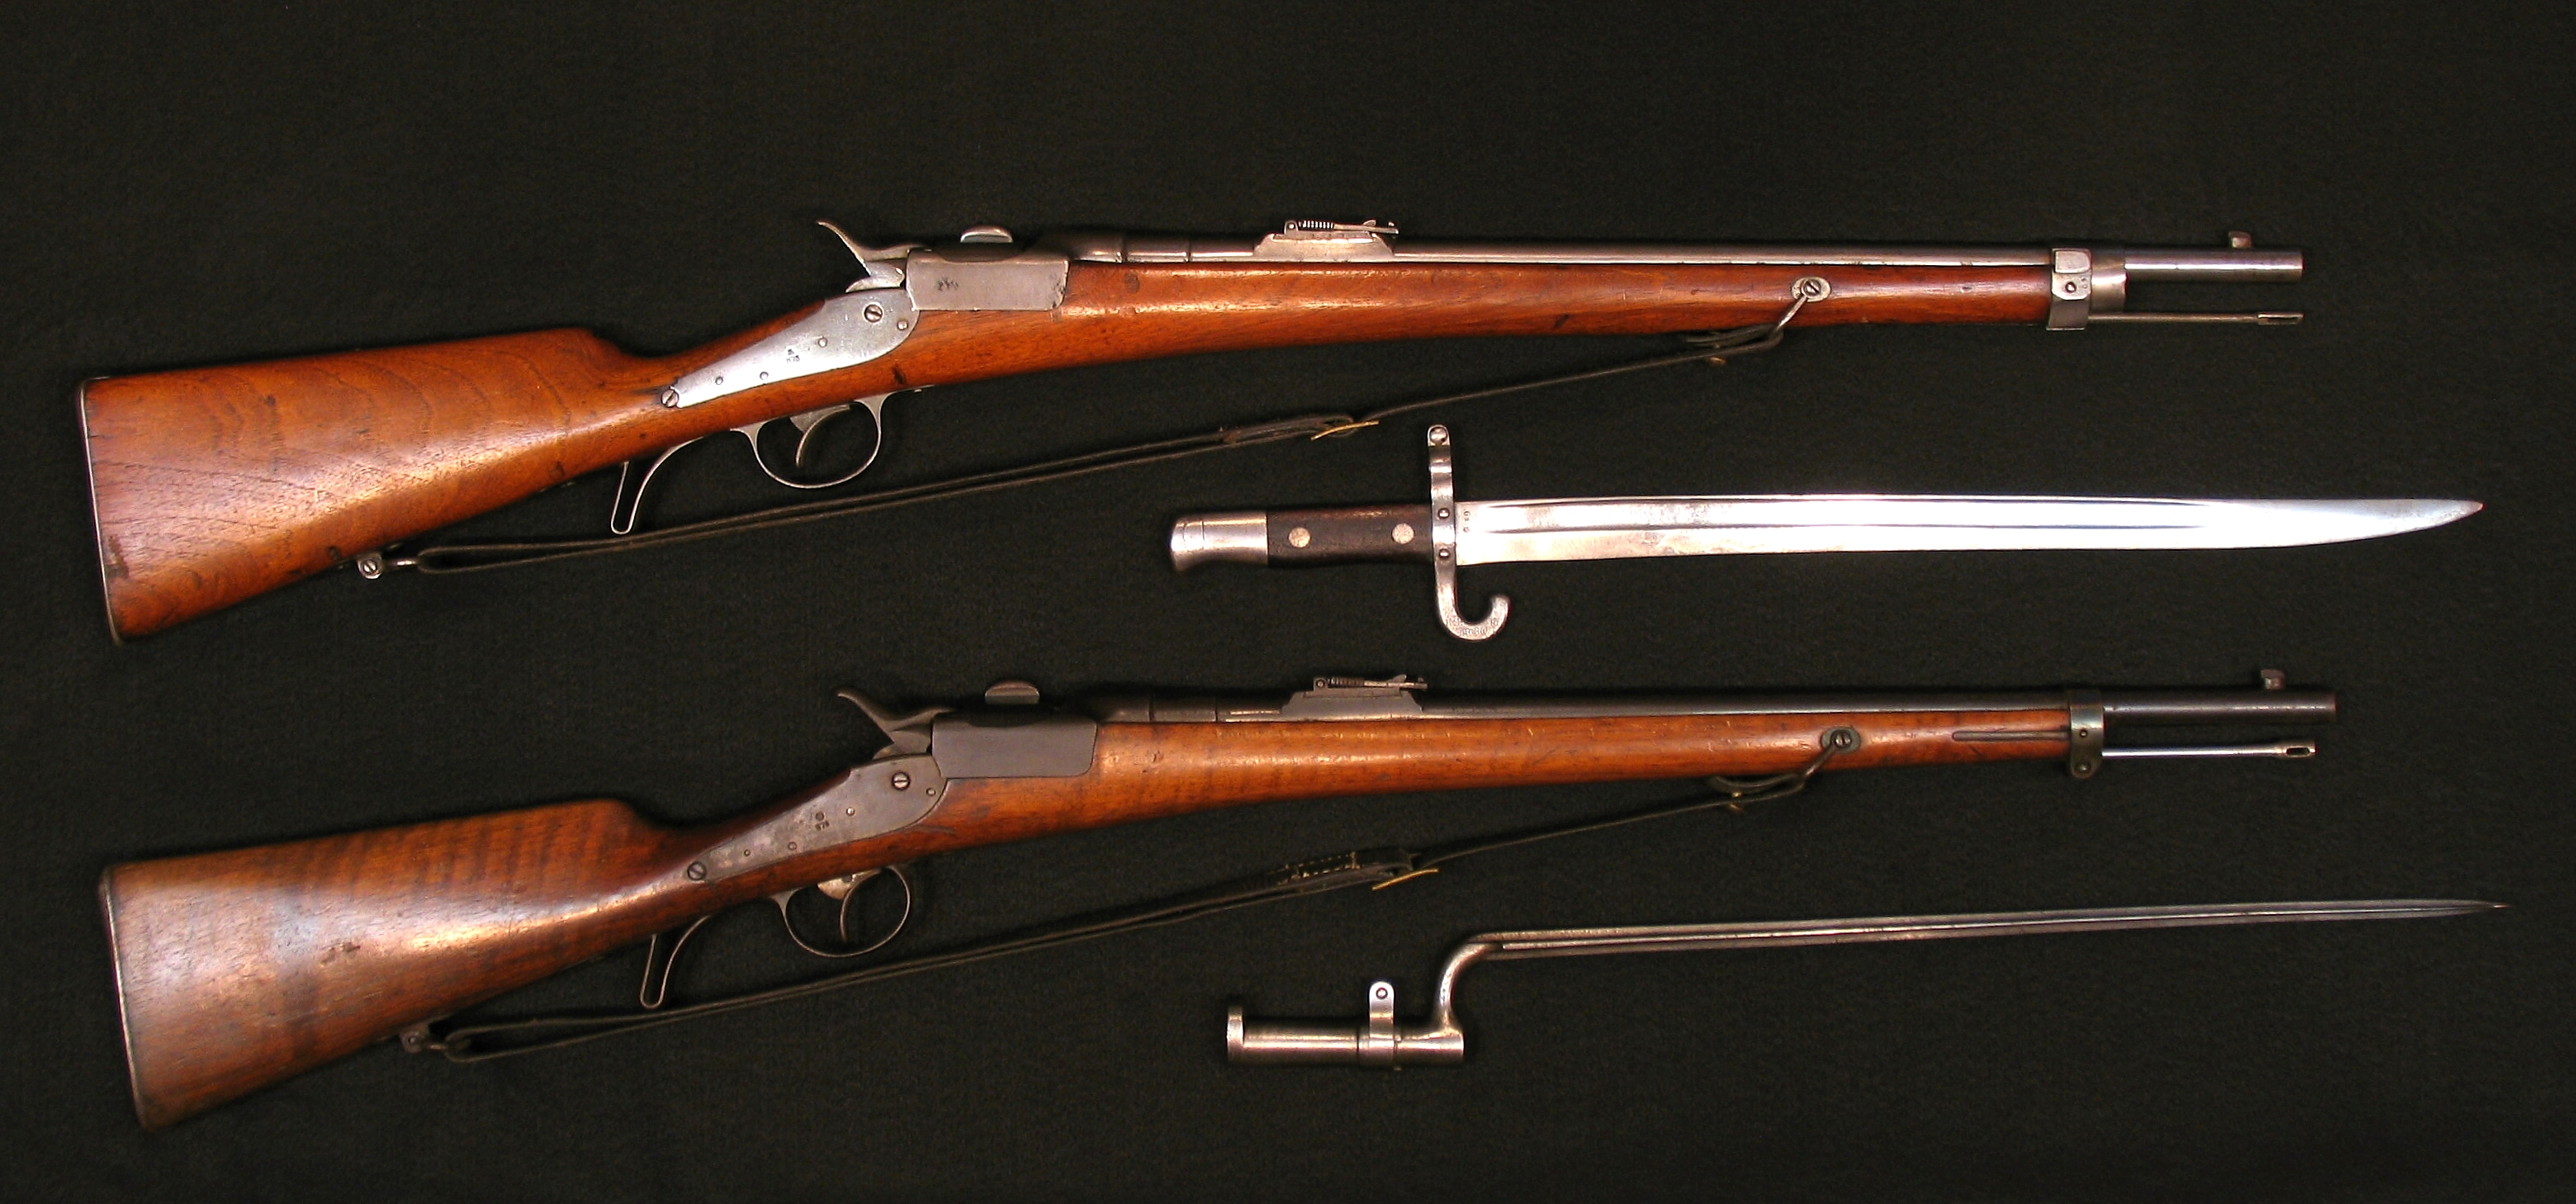 Click image for larger version.  Name:Werndl Carbines 73 E-K-Gew w Bayonets R-5a.jpg Views:1 Size:2.86 MB ID:3708387